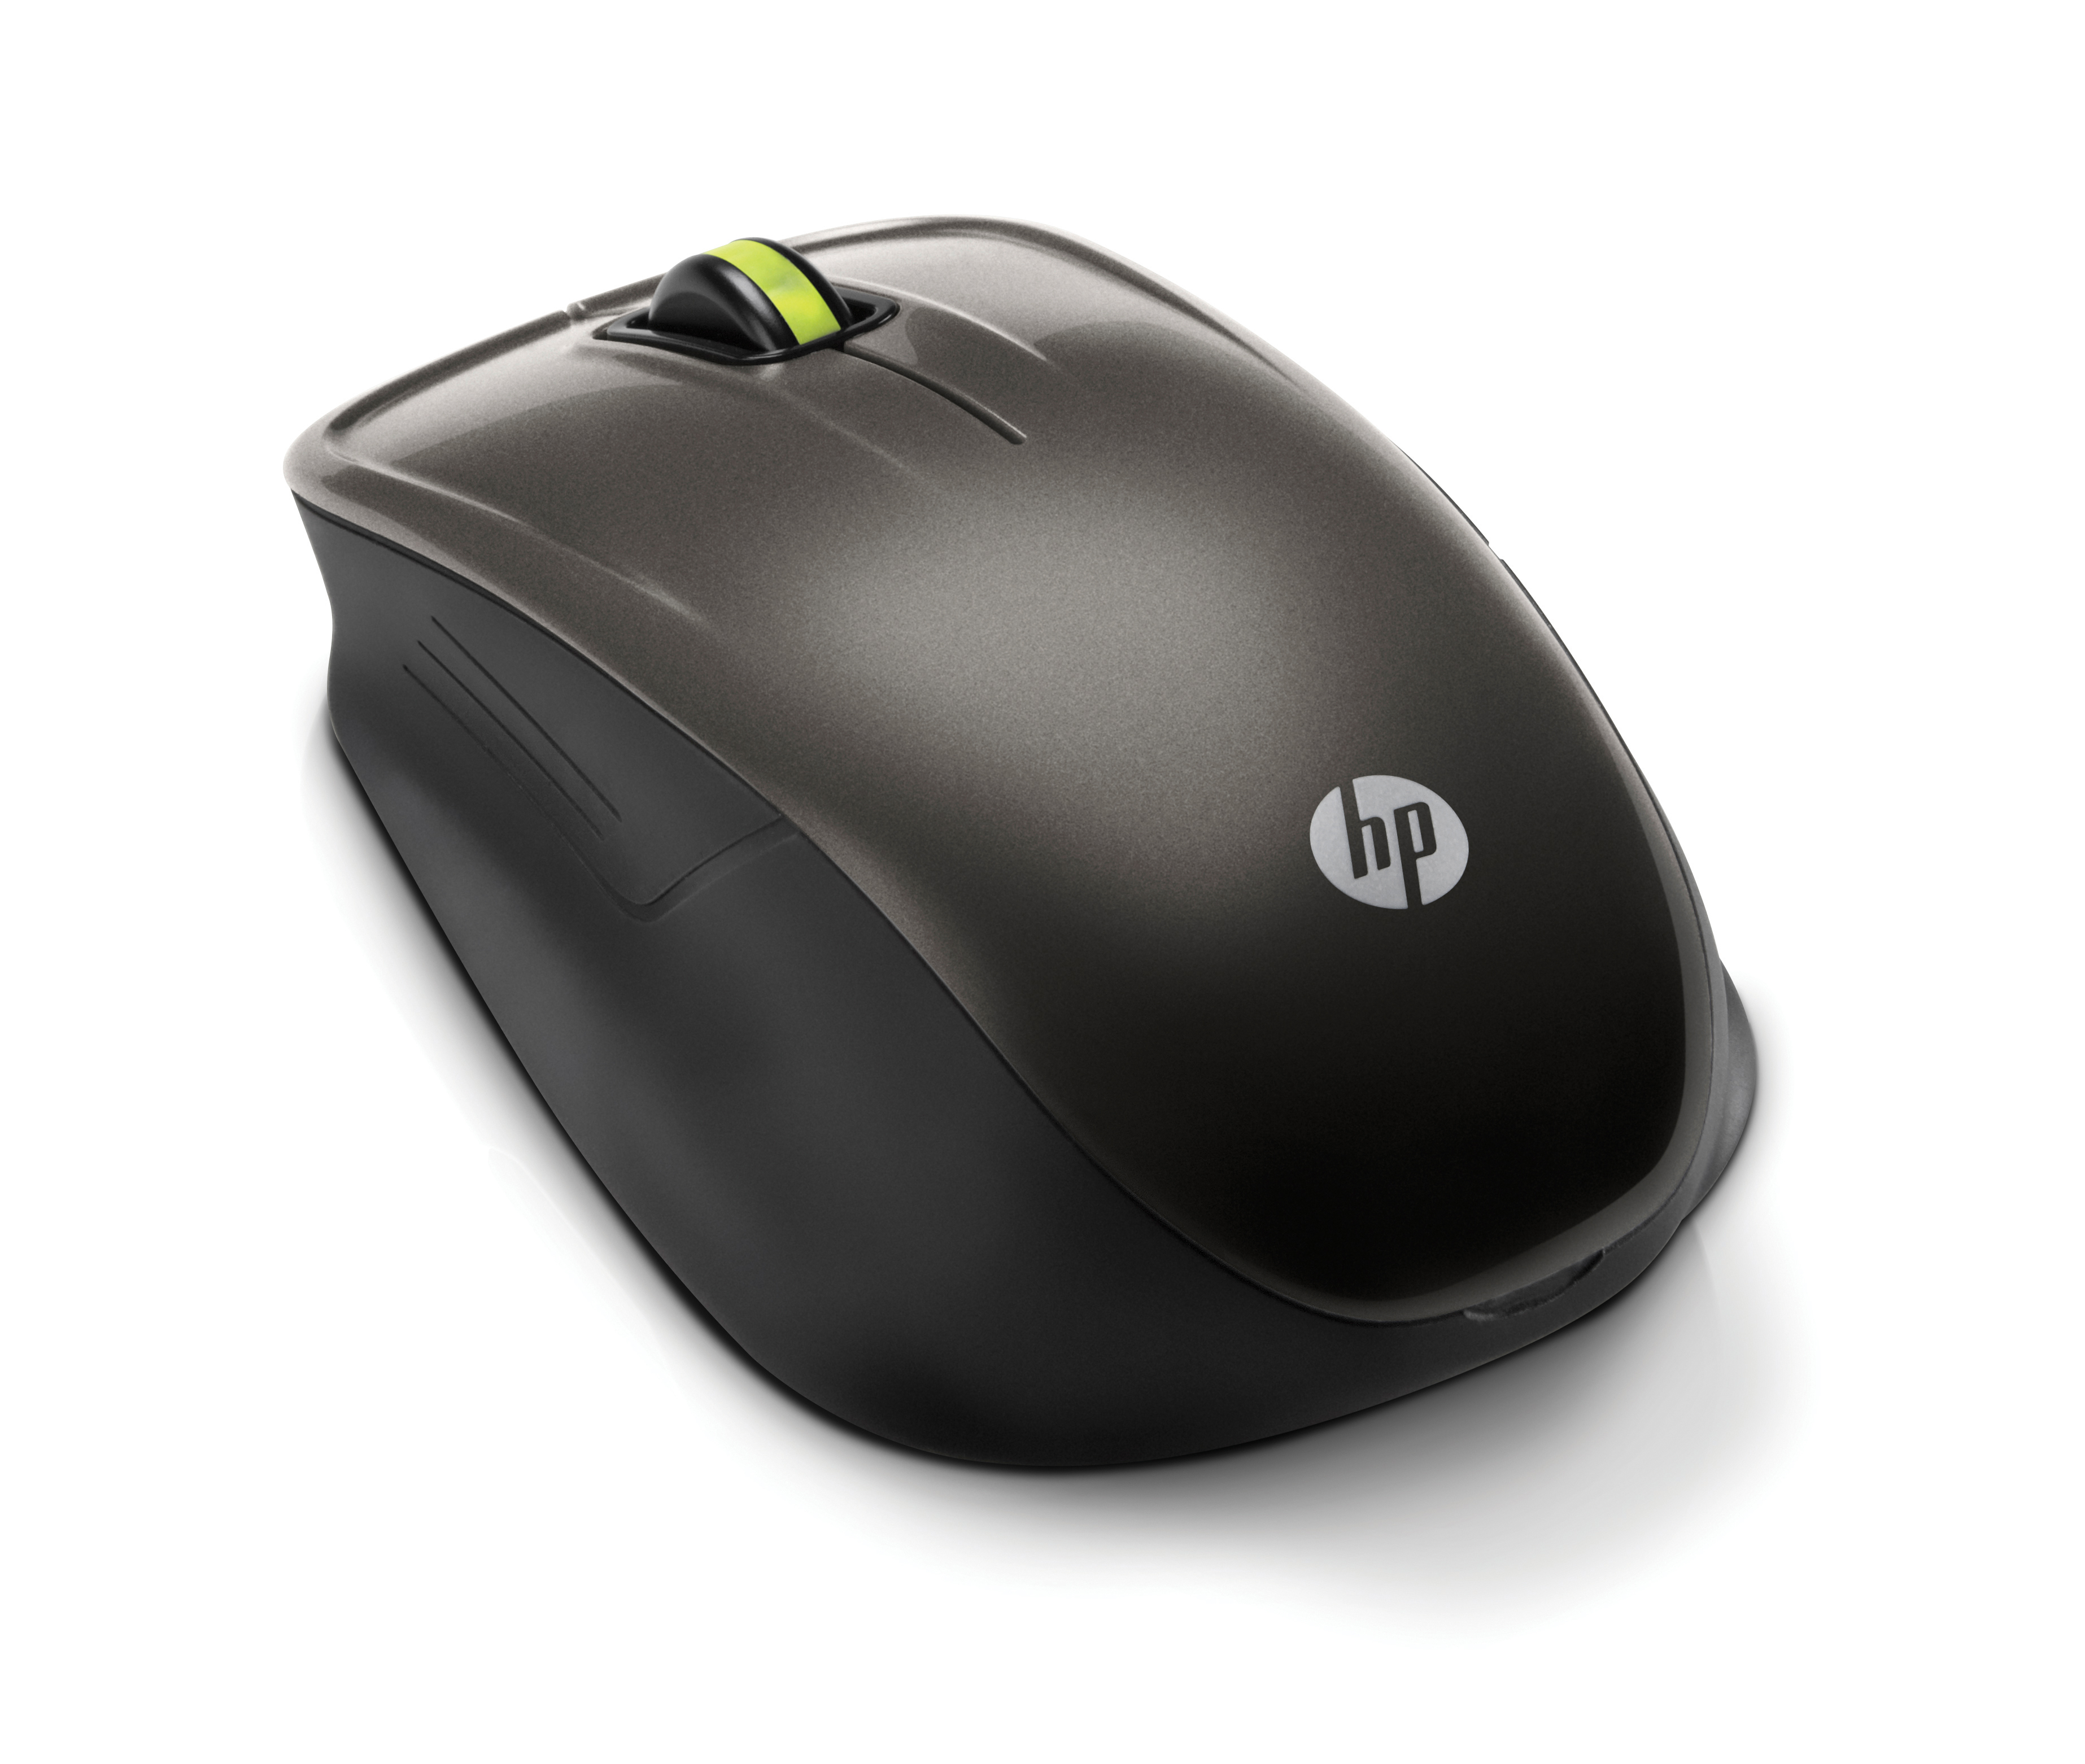 hp ca grip packard dp computers amazon optical comfort tablets comforter hewlett mouse wireless